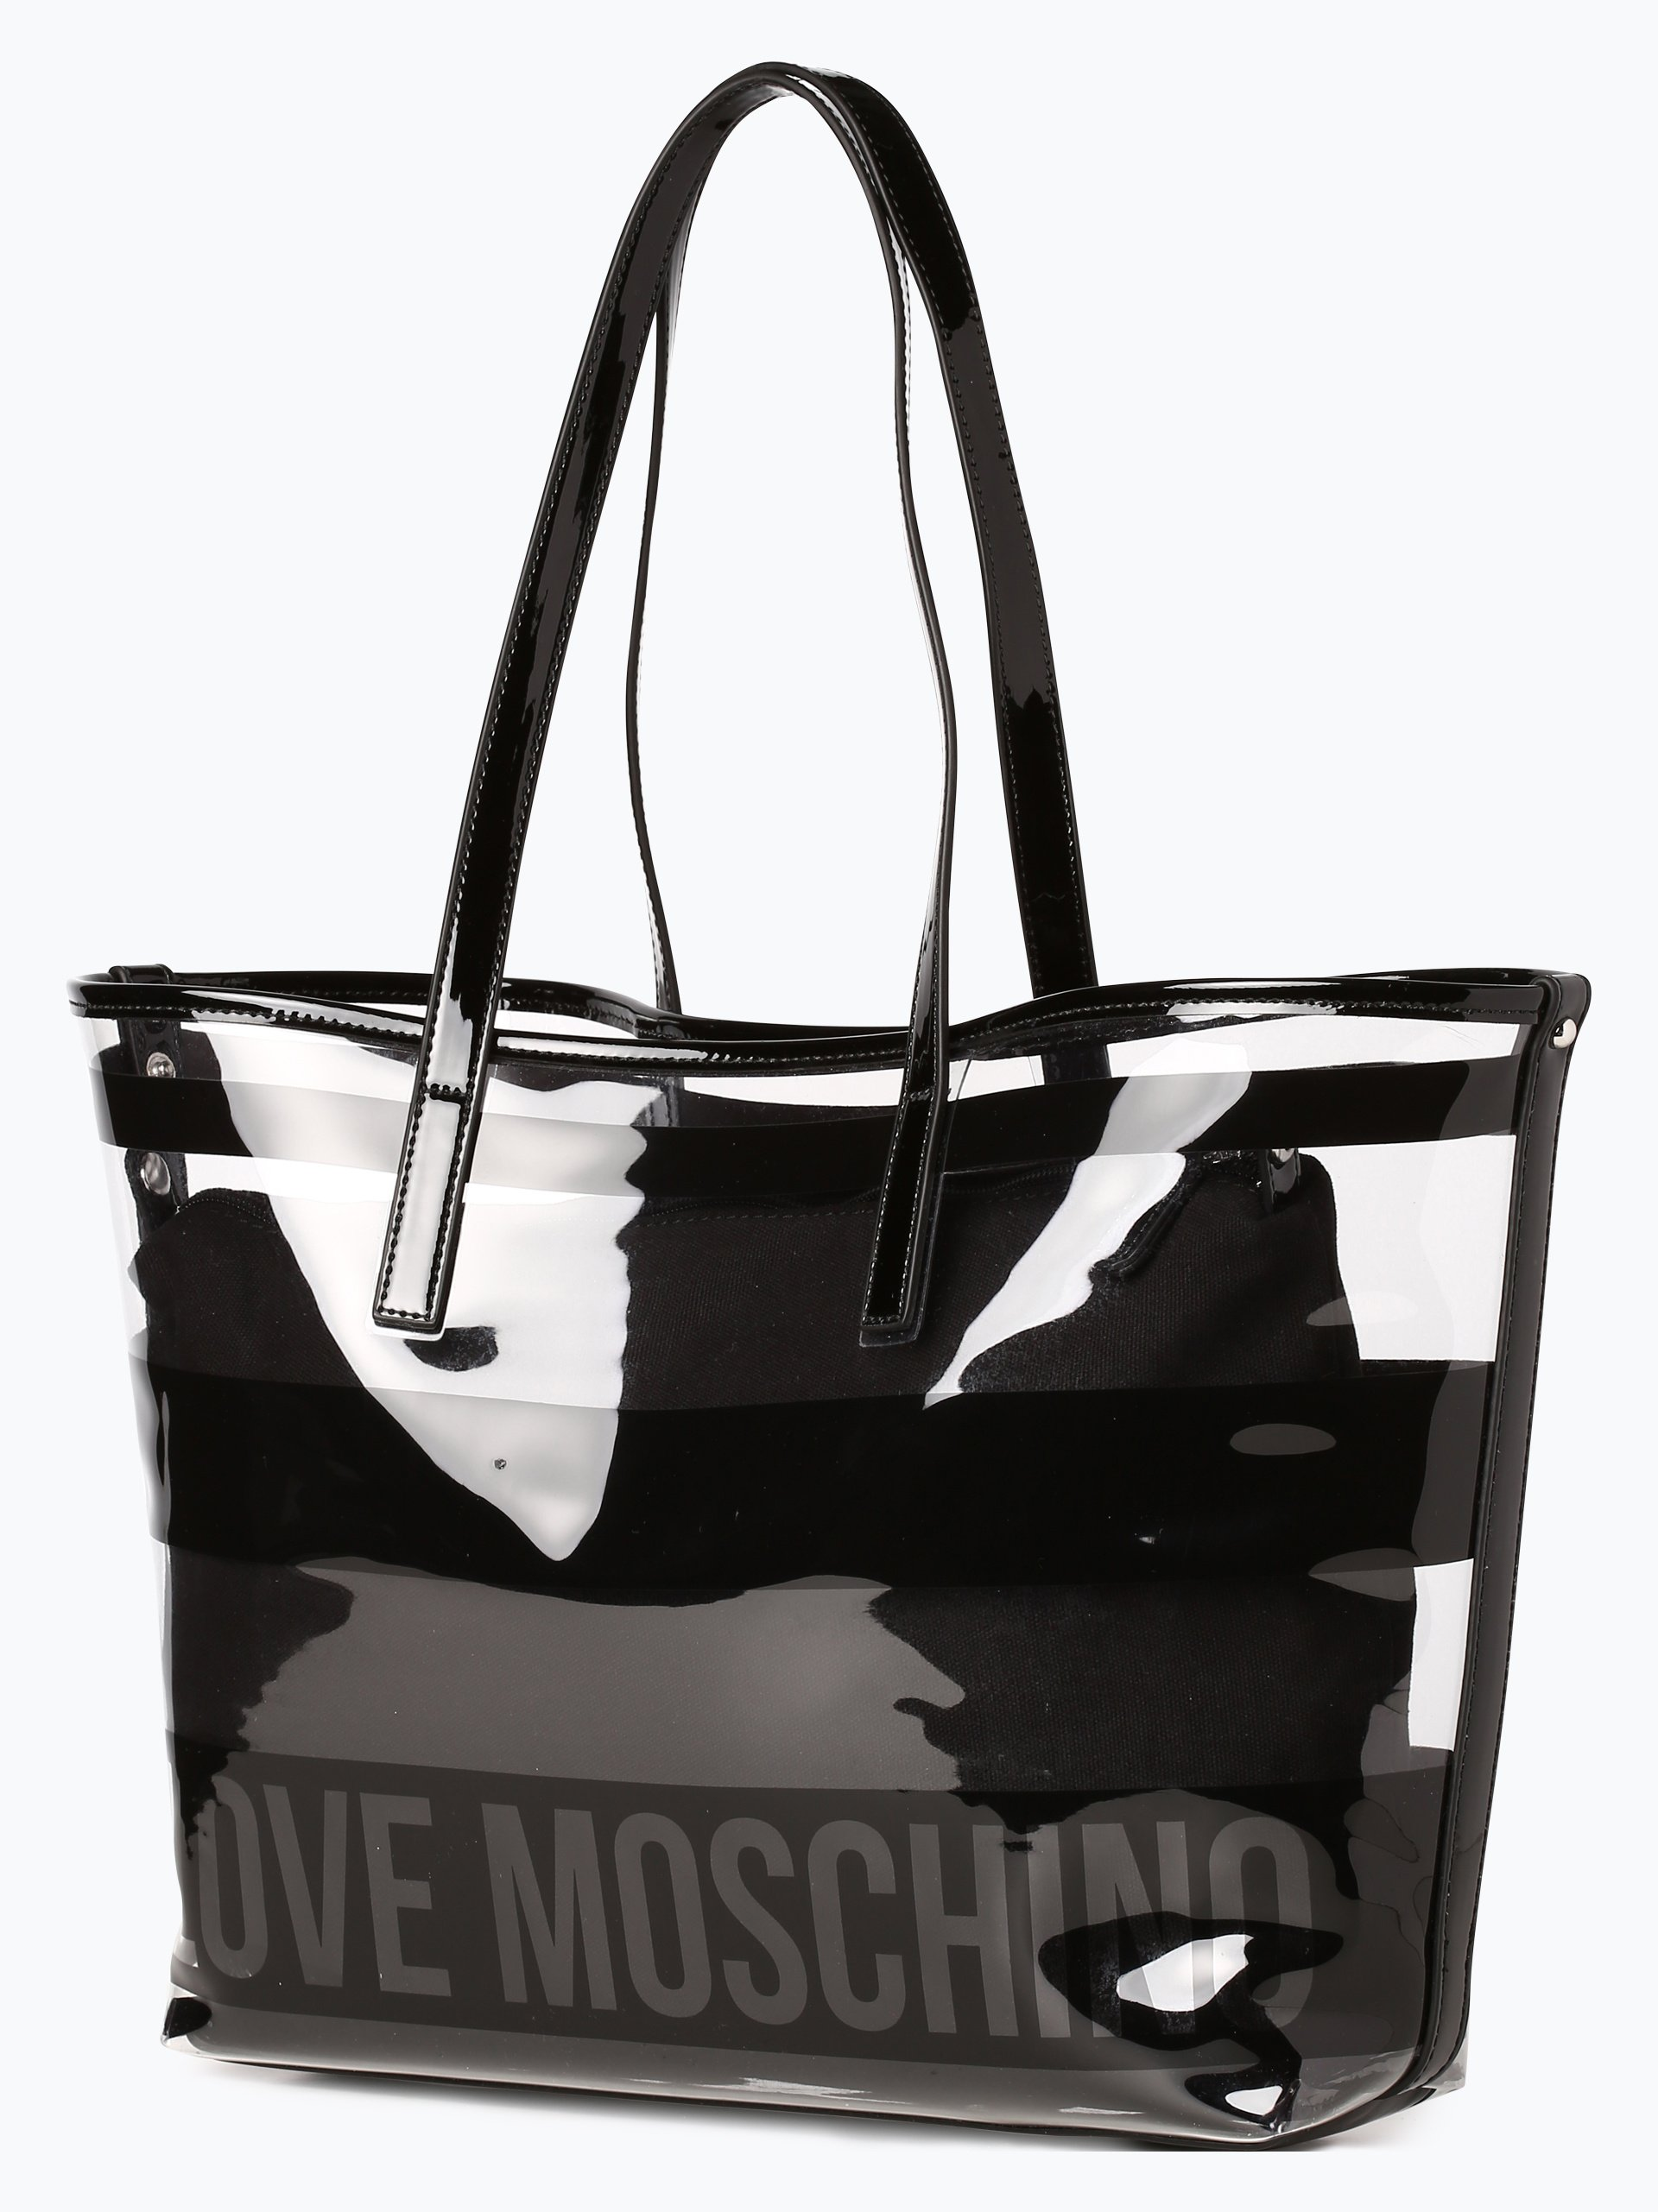 love moschino damen shopper online kaufen vangraaf com. Black Bedroom Furniture Sets. Home Design Ideas